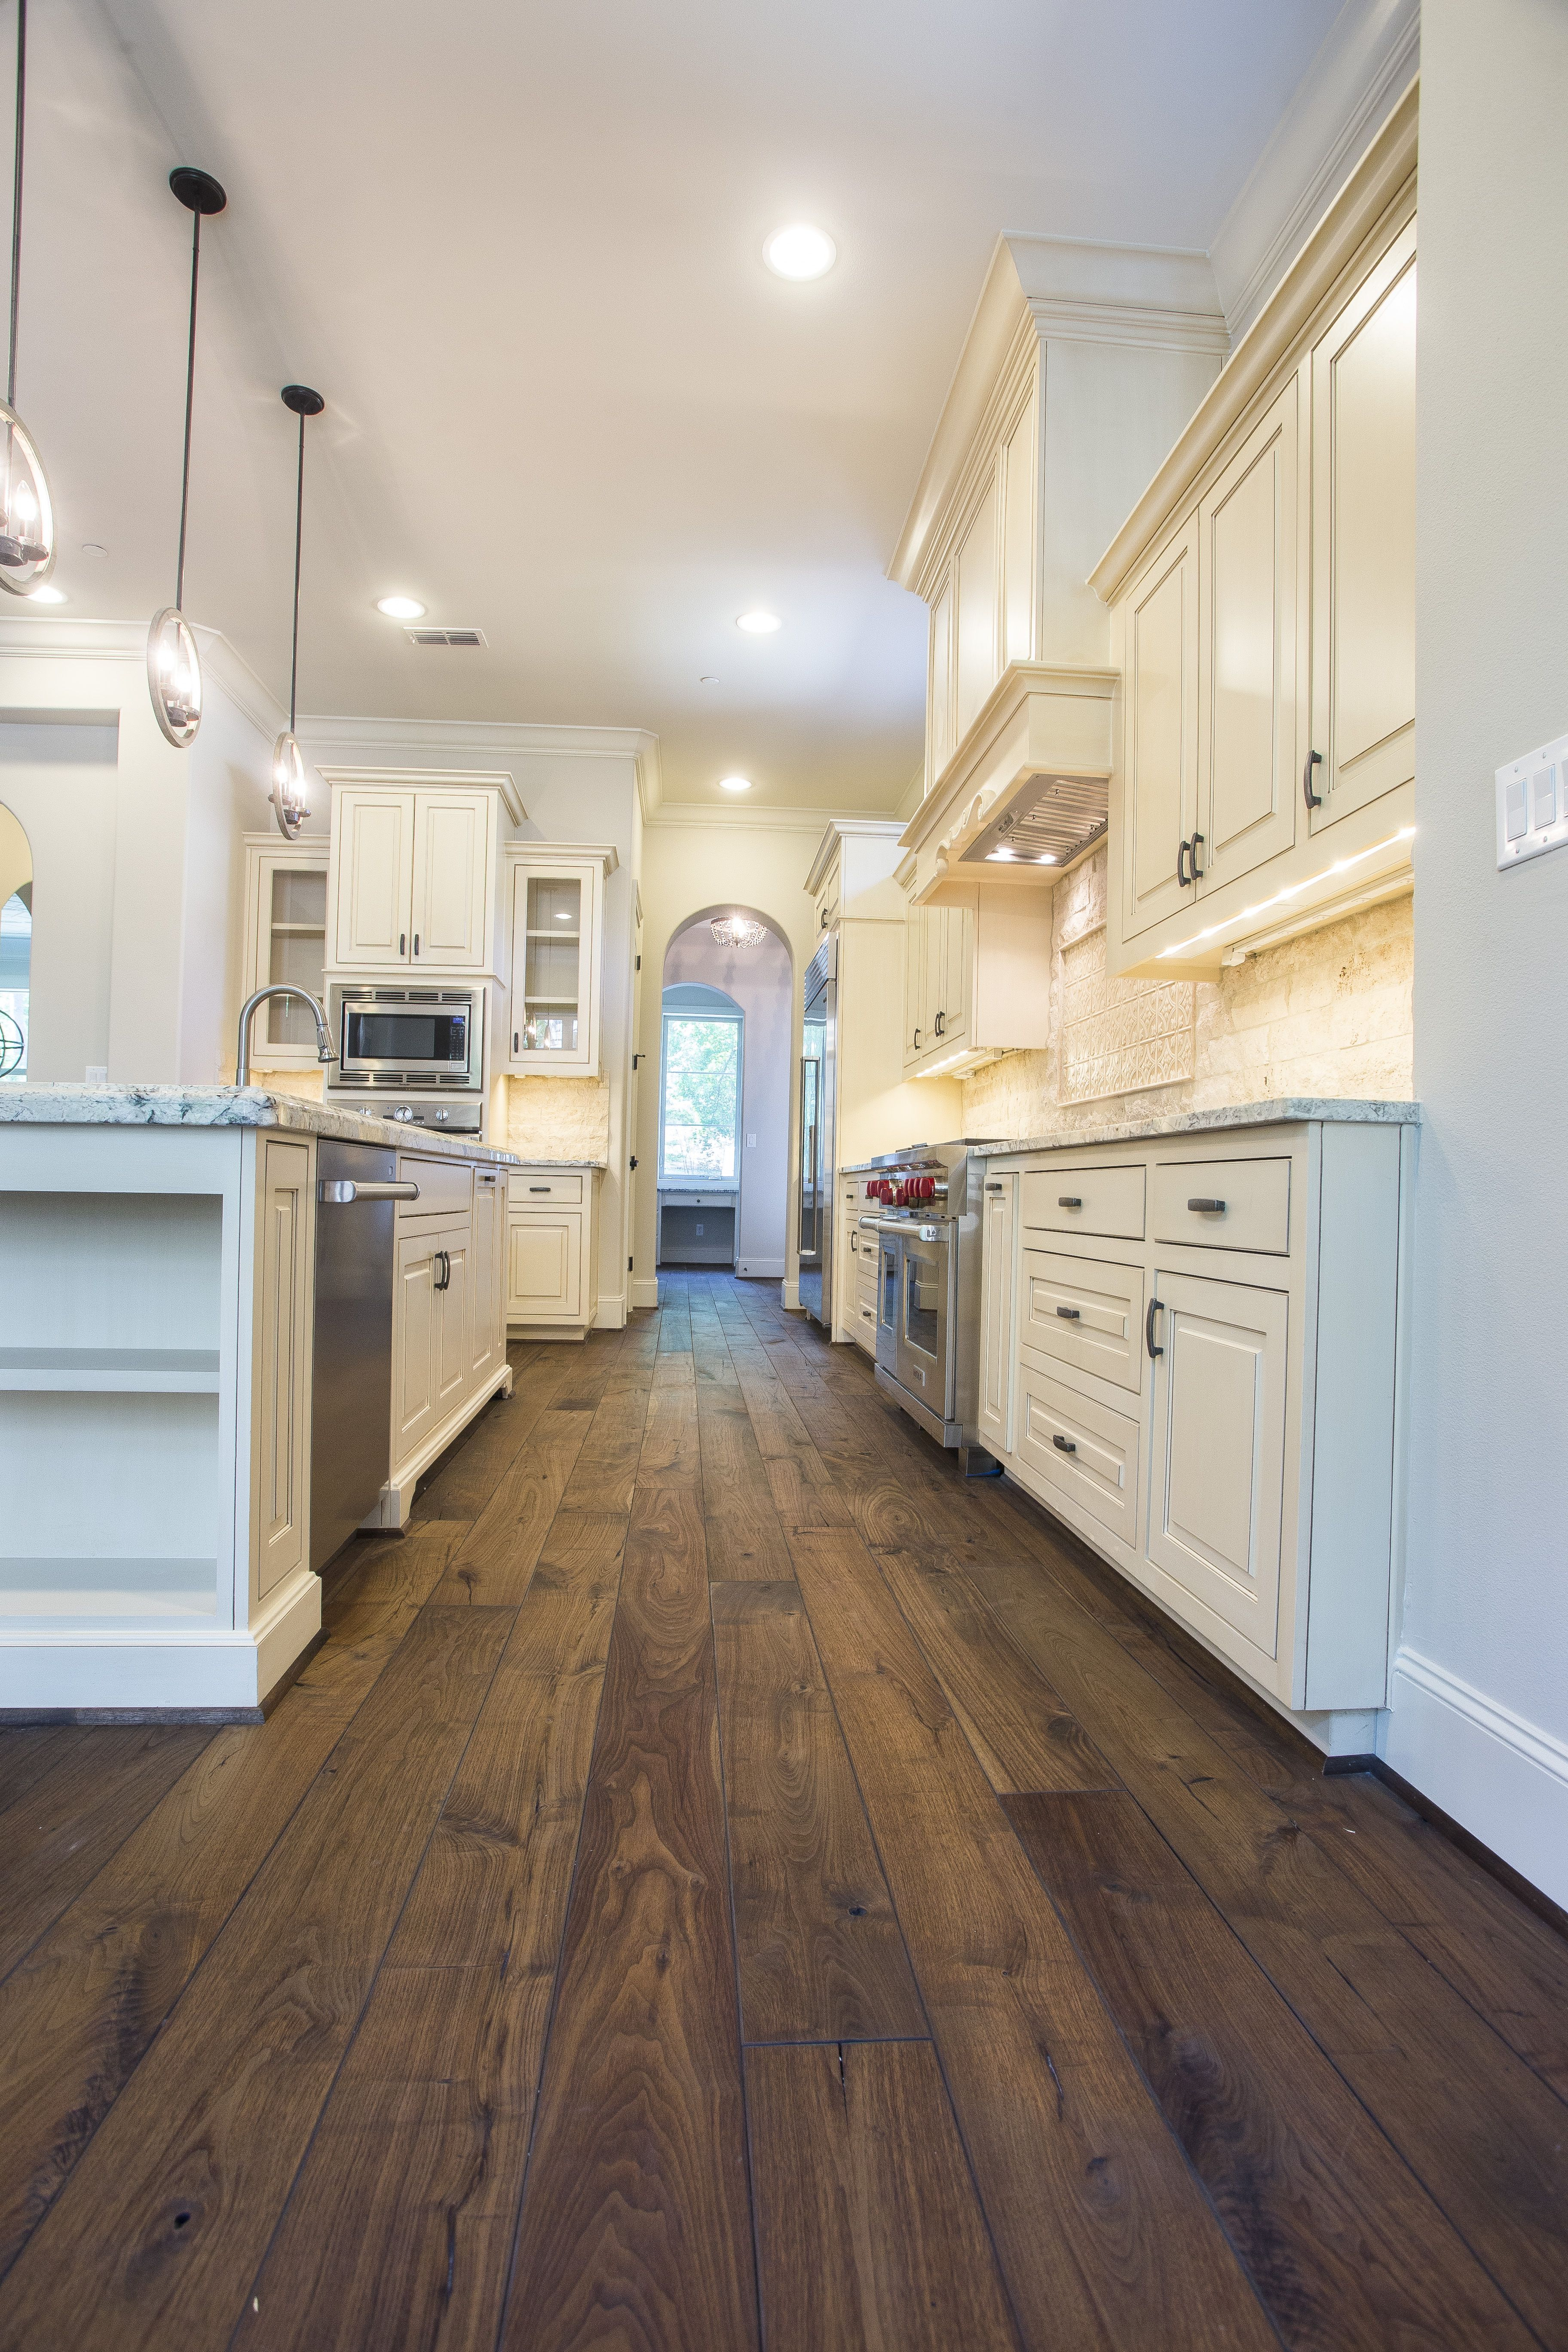 Best Appliances for Small Kitchens Entrancing Small